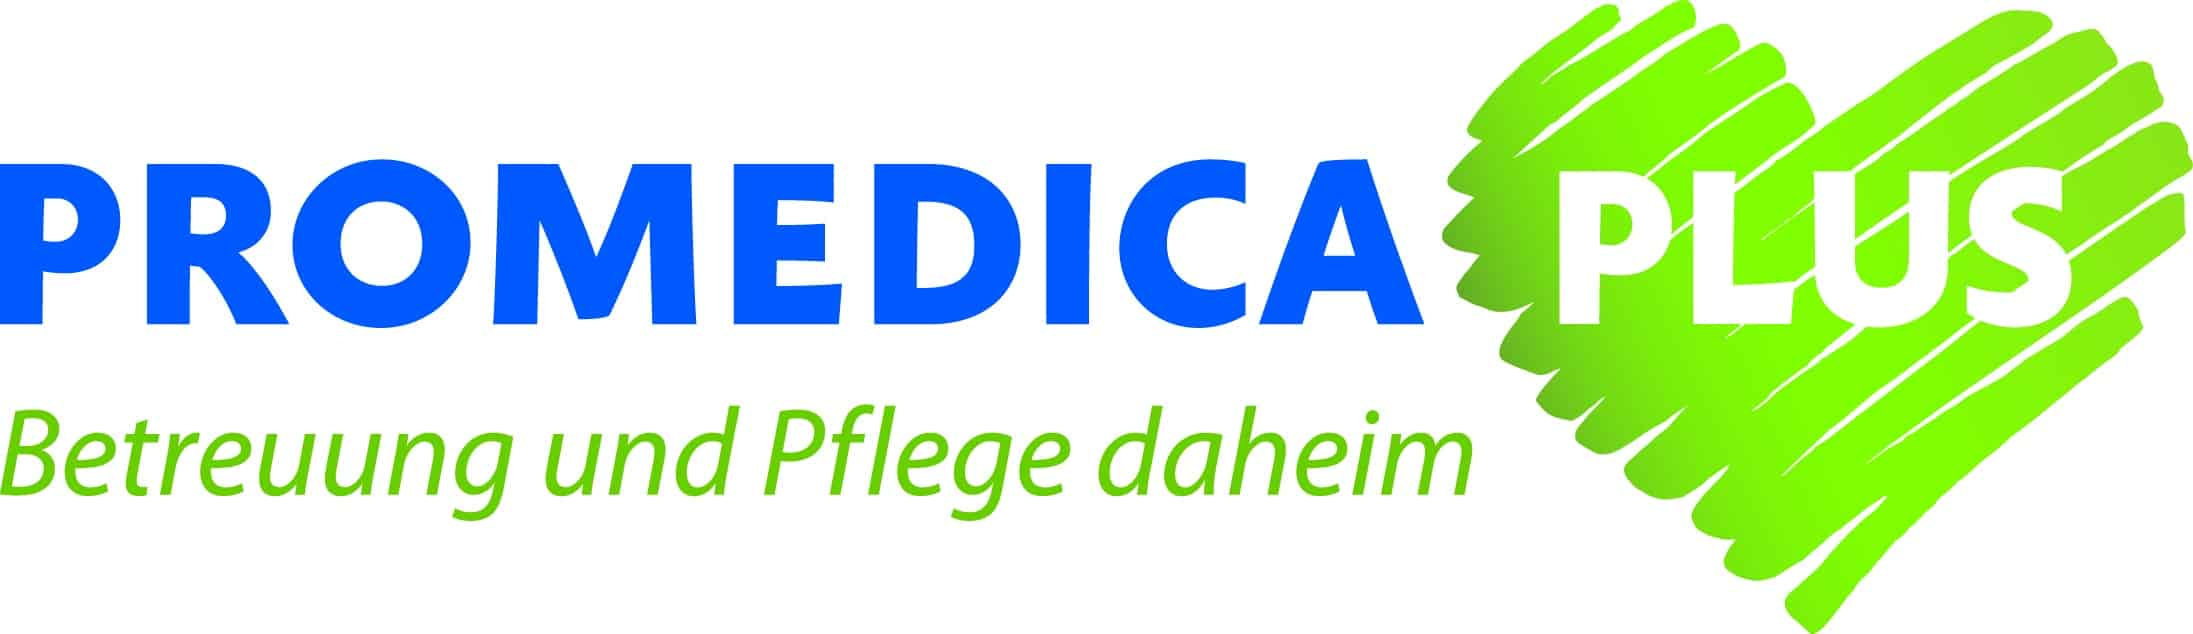 Promedica Plus Münster